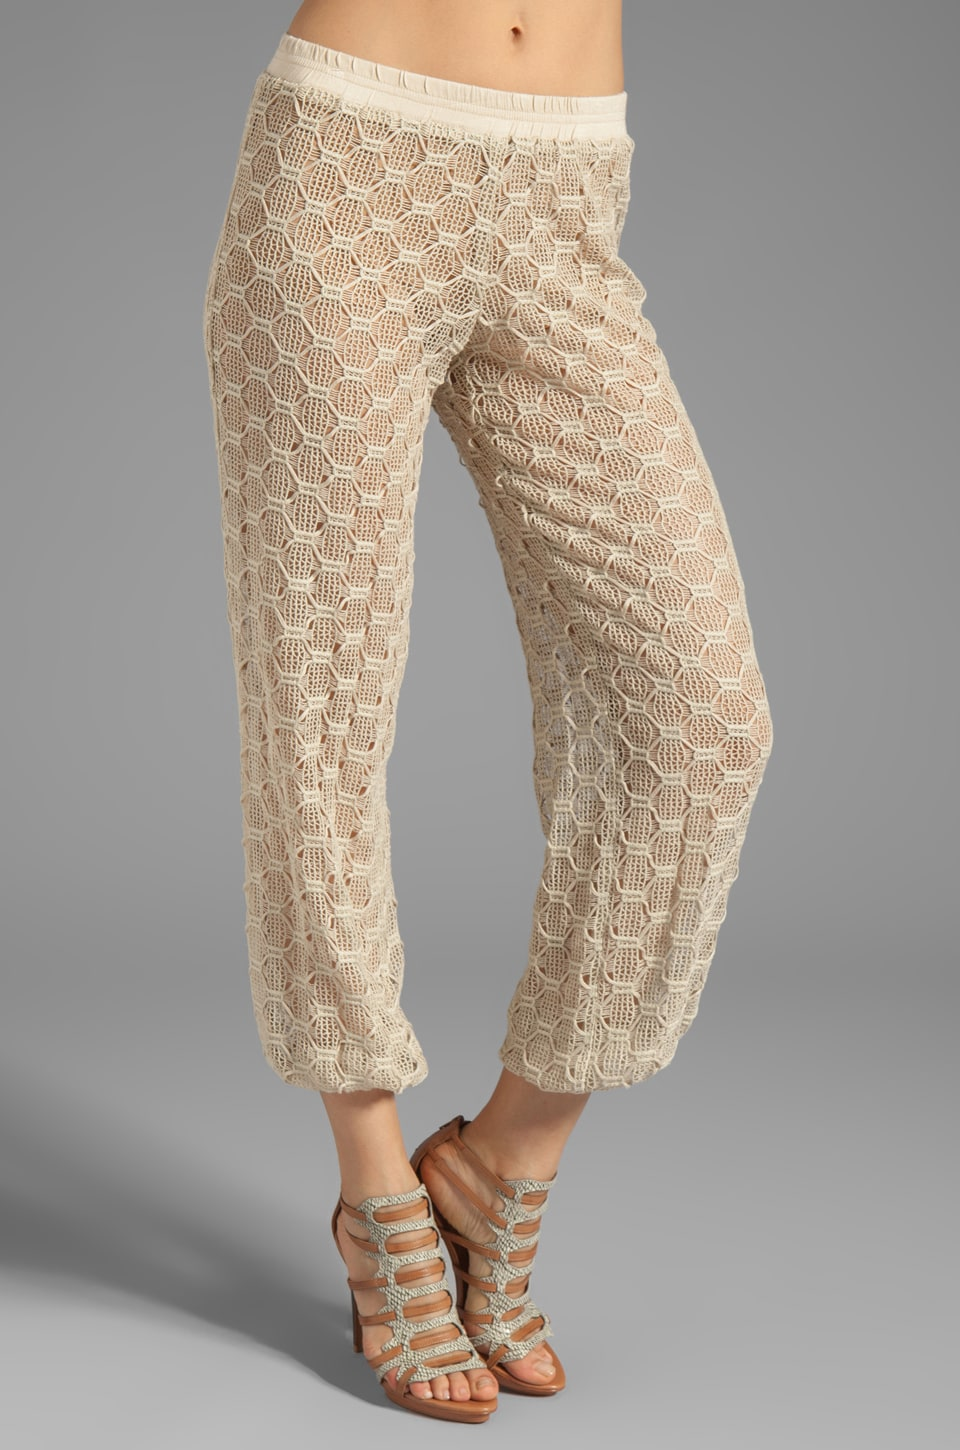 Trina Turk Hexagon Bonded Lace Lila Pant in Khaki